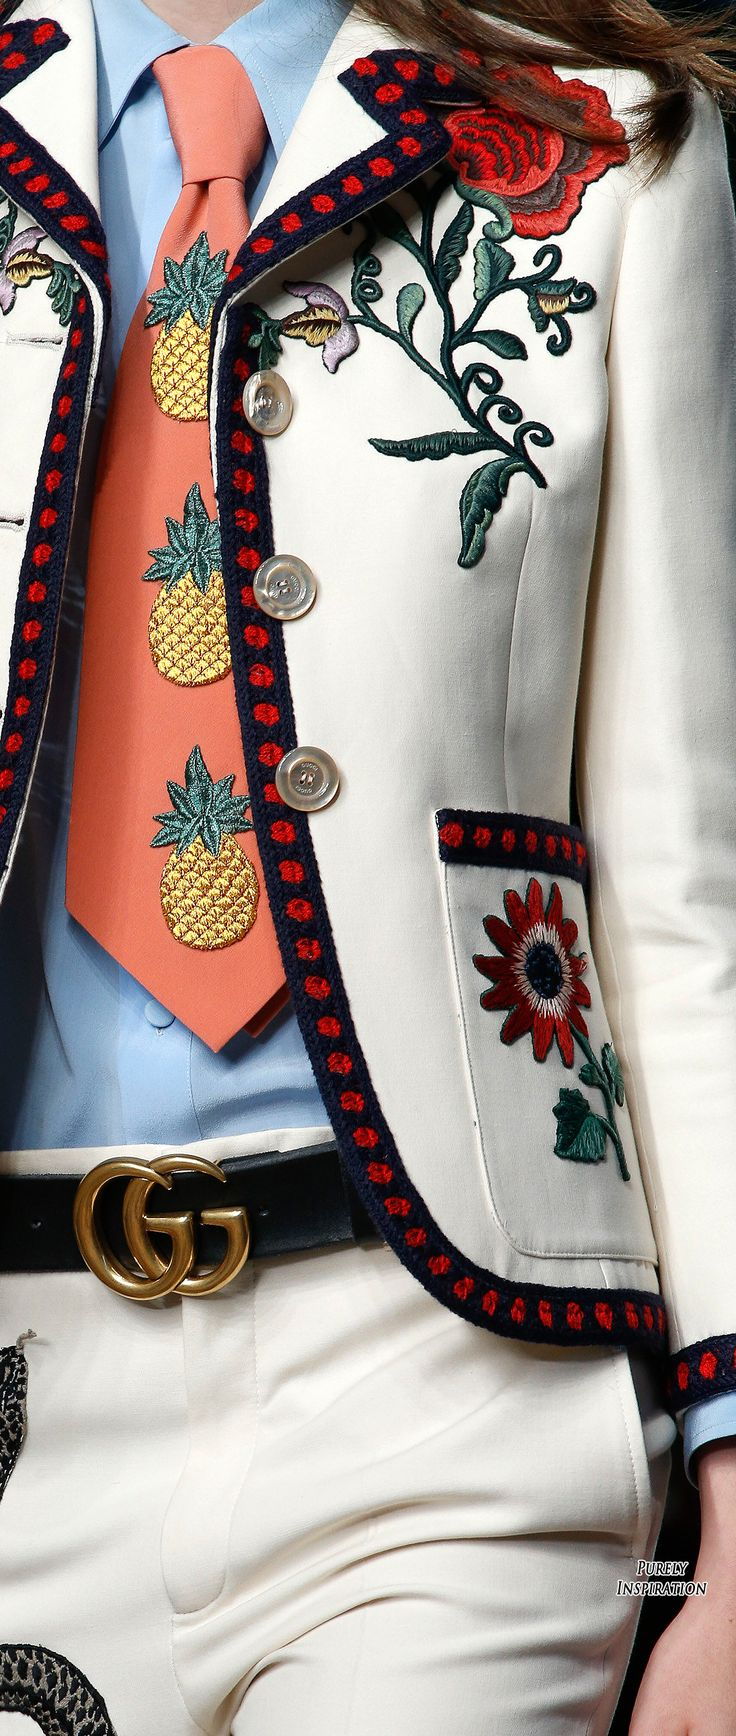 Gucci SS2016 Women's Fashion RTW | Purely Inspiration Contemplating on upgrading my plain white jacket with embroidery .....